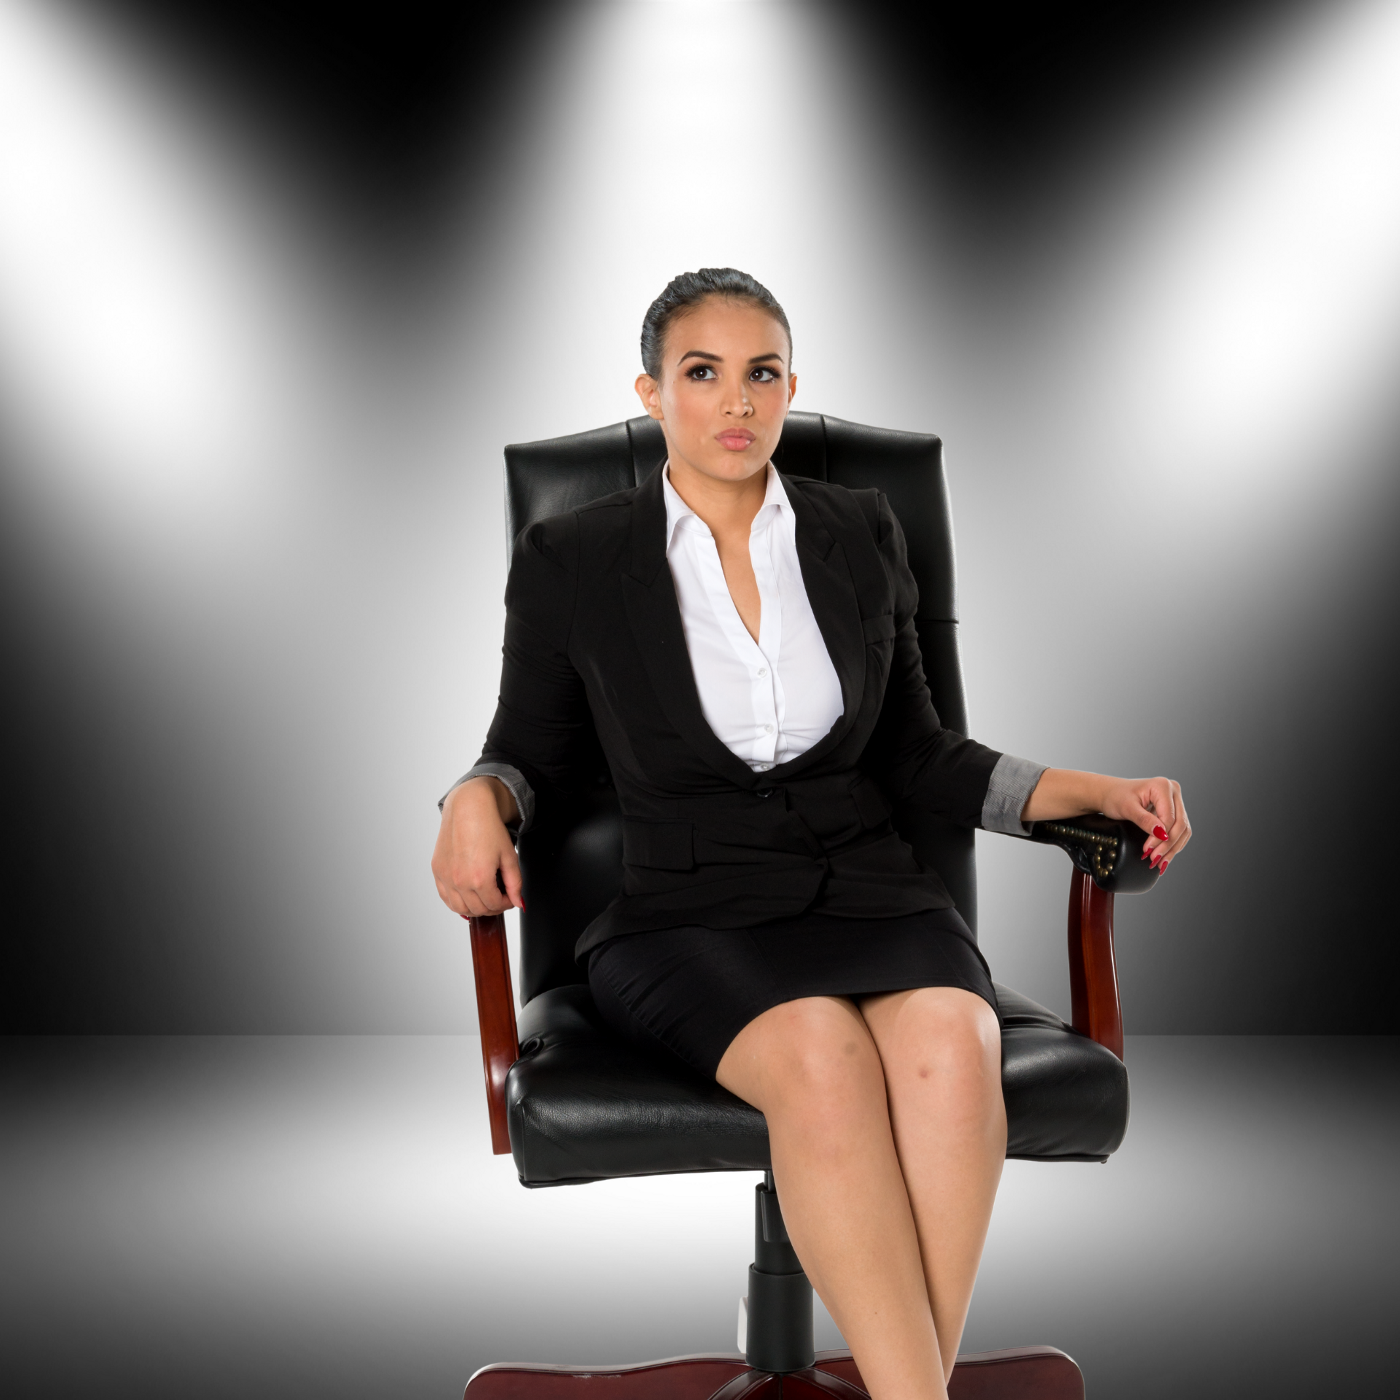 Woman sitting in an office chair on stage under spotlight.